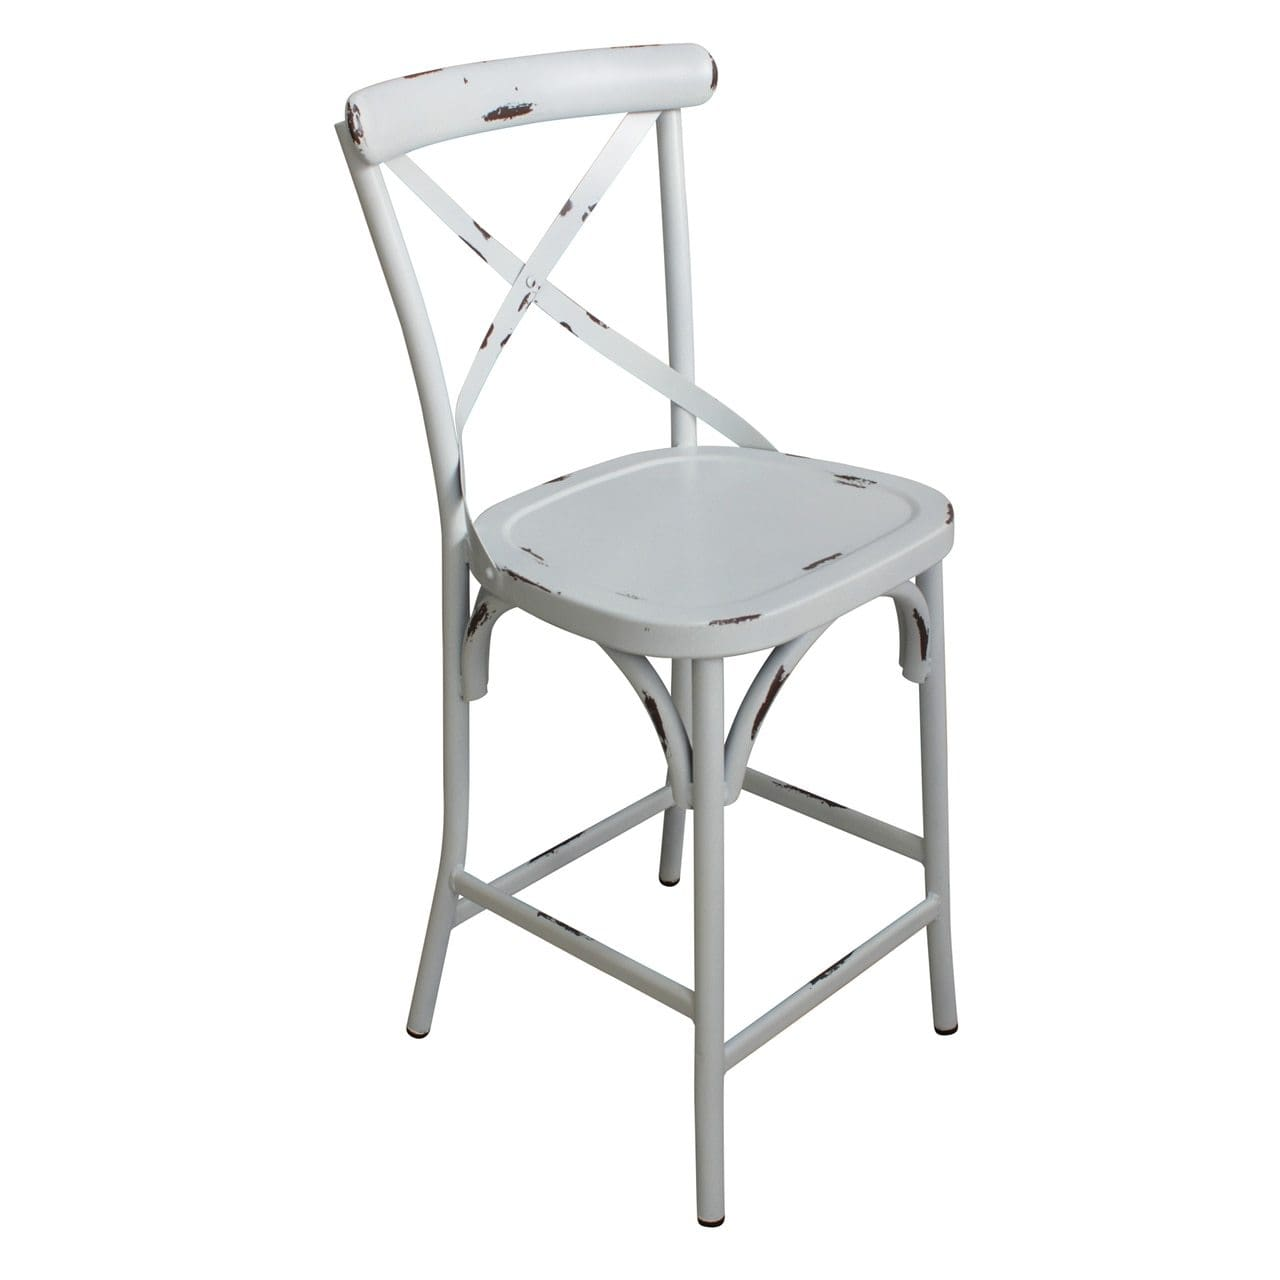 Phenomenal Outdoor French Provincial Cross Back Bar Stool Shabby Chic Machost Co Dining Chair Design Ideas Machostcouk